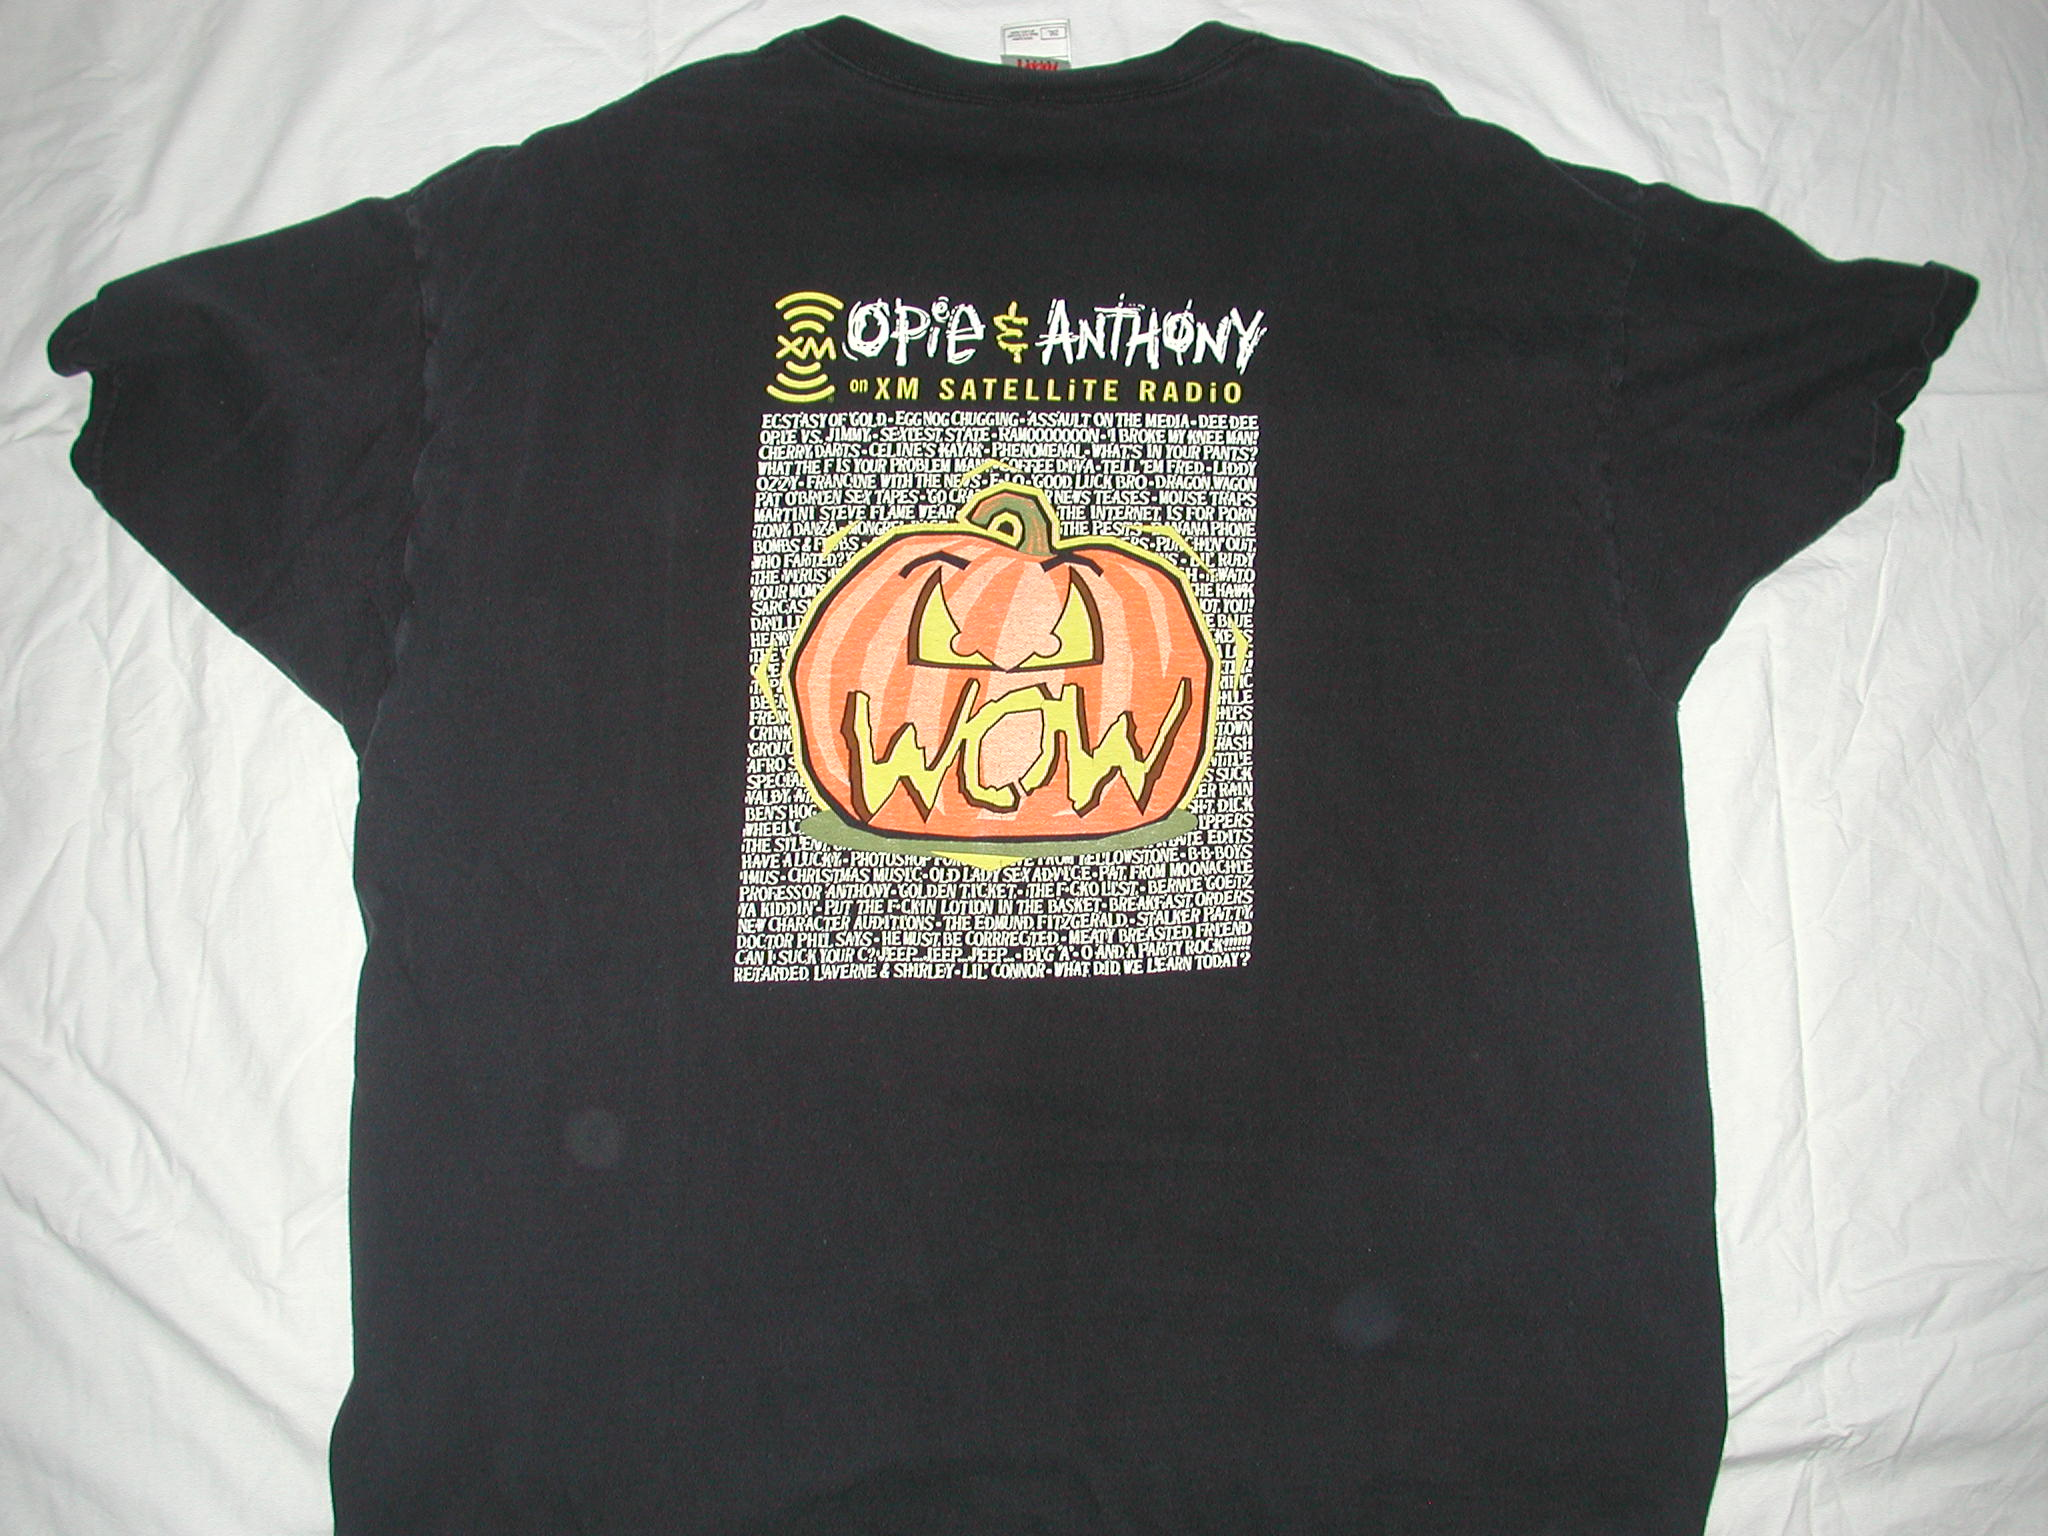 classic opie and anthony t-shirts for sale